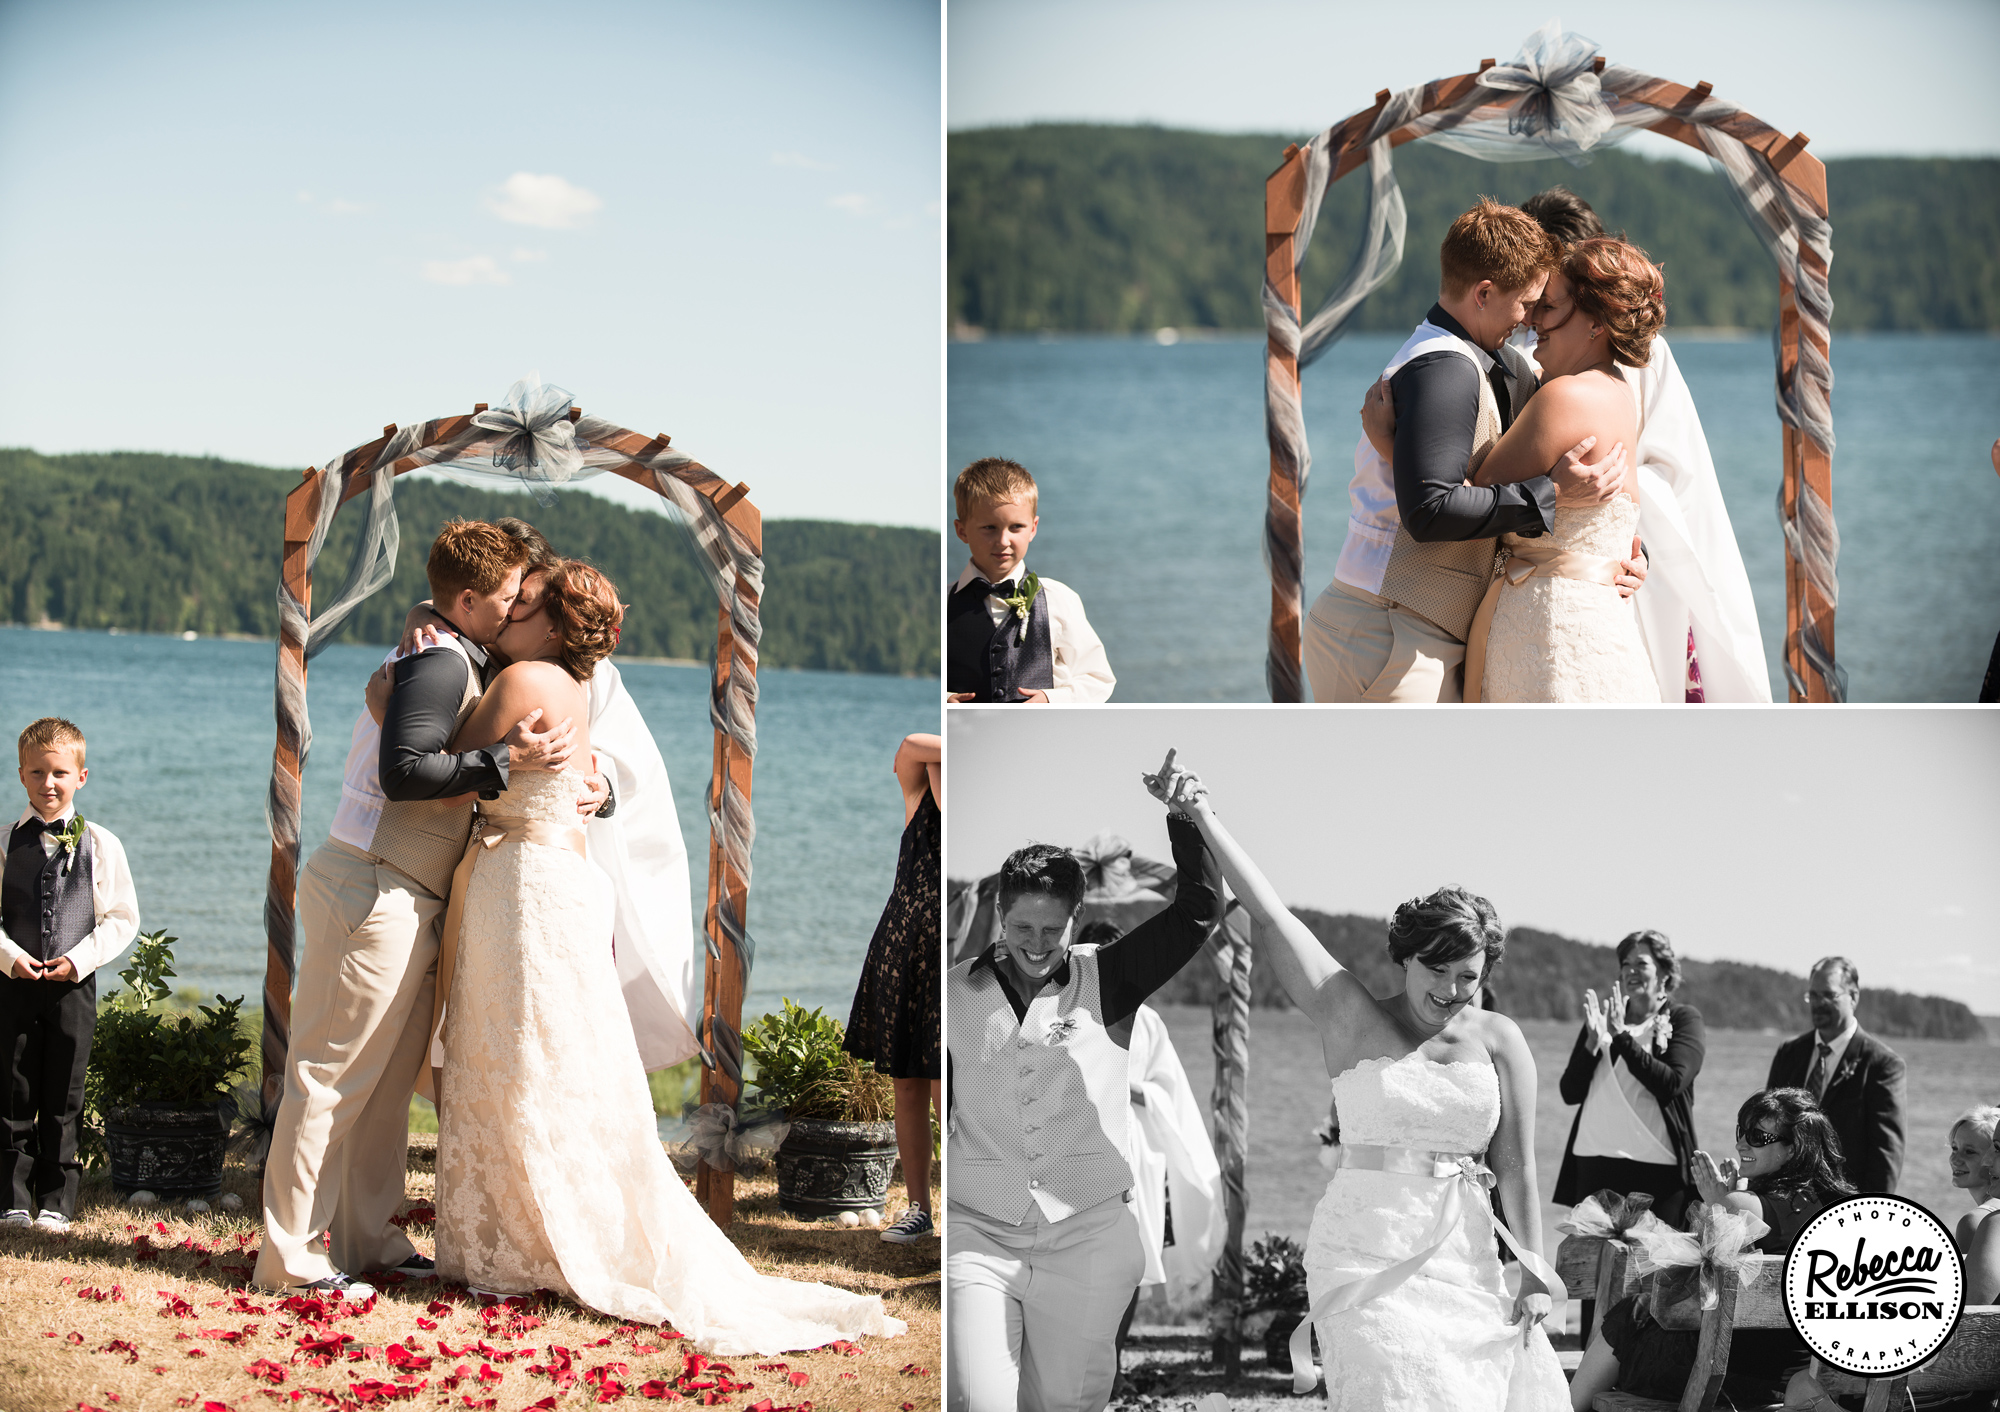 Outdoor Beachfront wedding ceremony at the Hoodsport Beach Club featuring a belted white wedding dress, wooden arch and flower petals photographed by Rebecca Ellison Photography